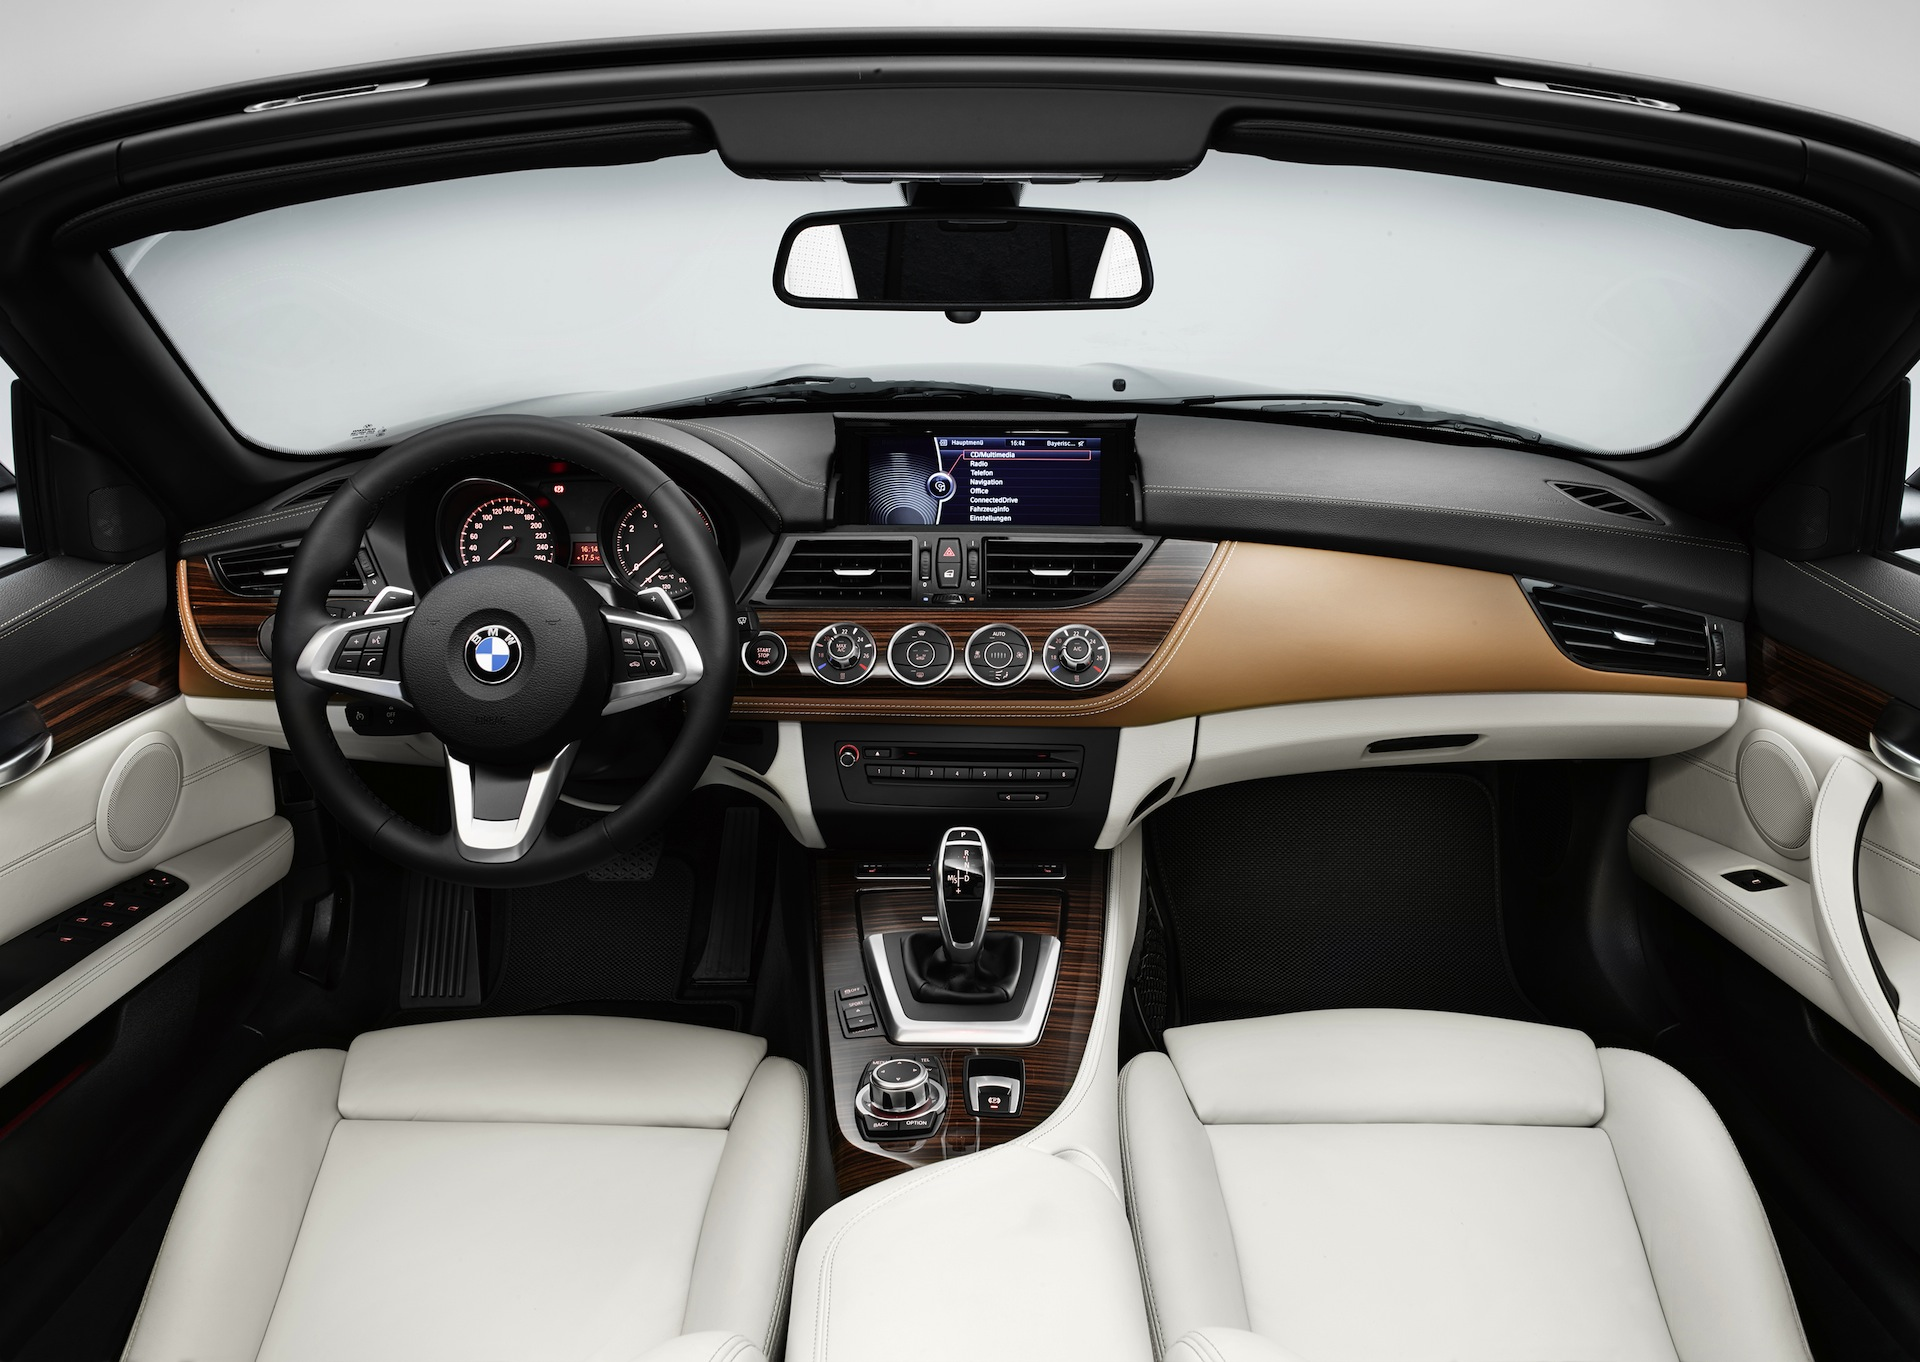 The Bmw Z4 In Pure Fusion Design